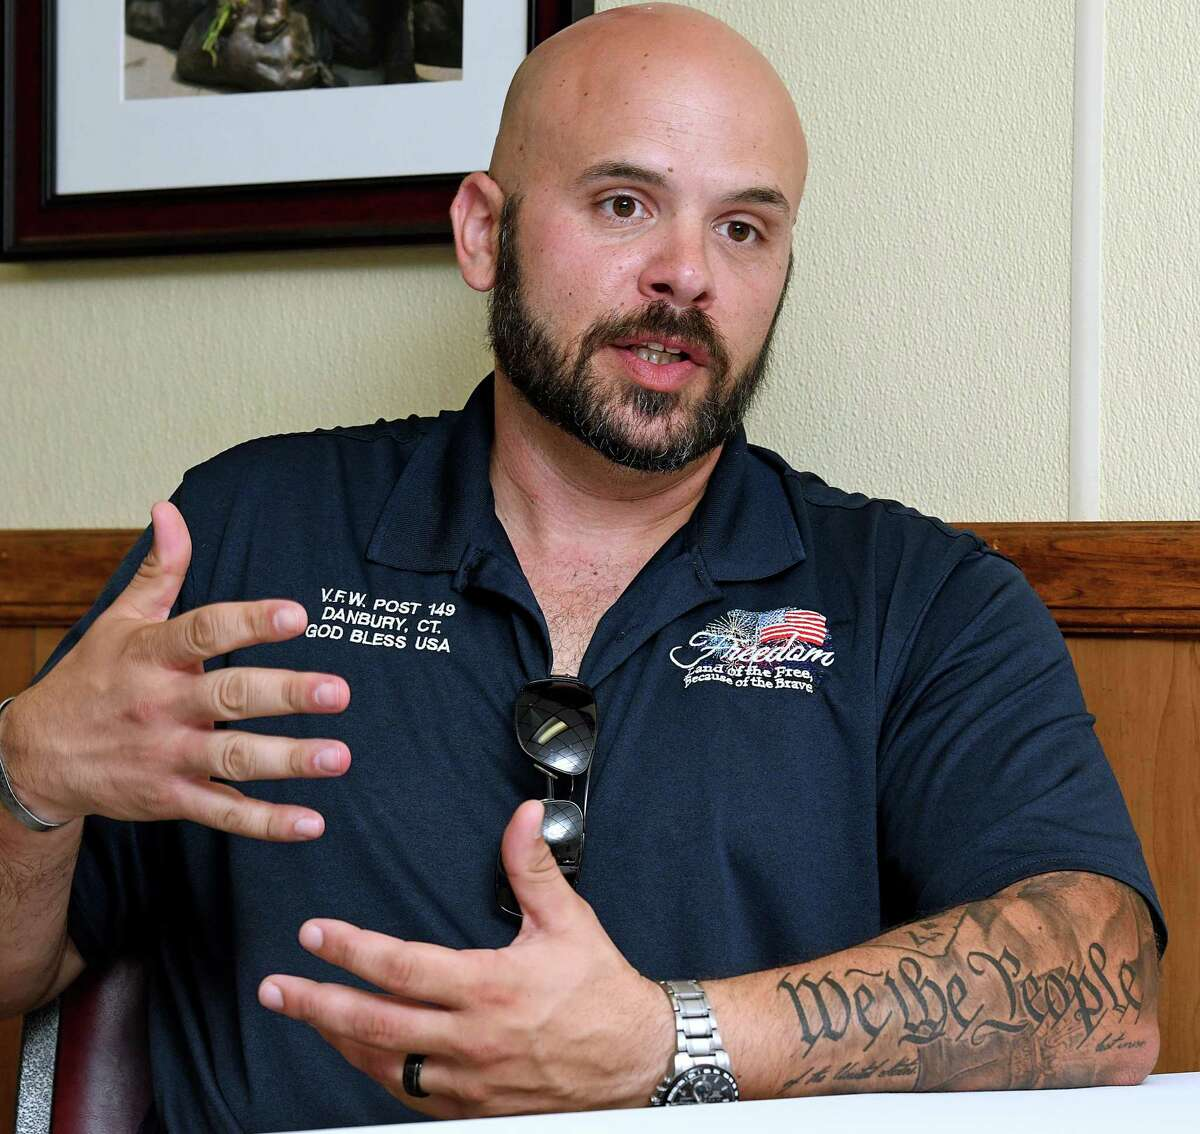 David Vieira of New Milford, an Army veteran of the war in Afganistan, talks about the current situation. He is a Junior Vice Commander with the VFW Post 149 in Danbury. Photo Monday, August 30, 2021.